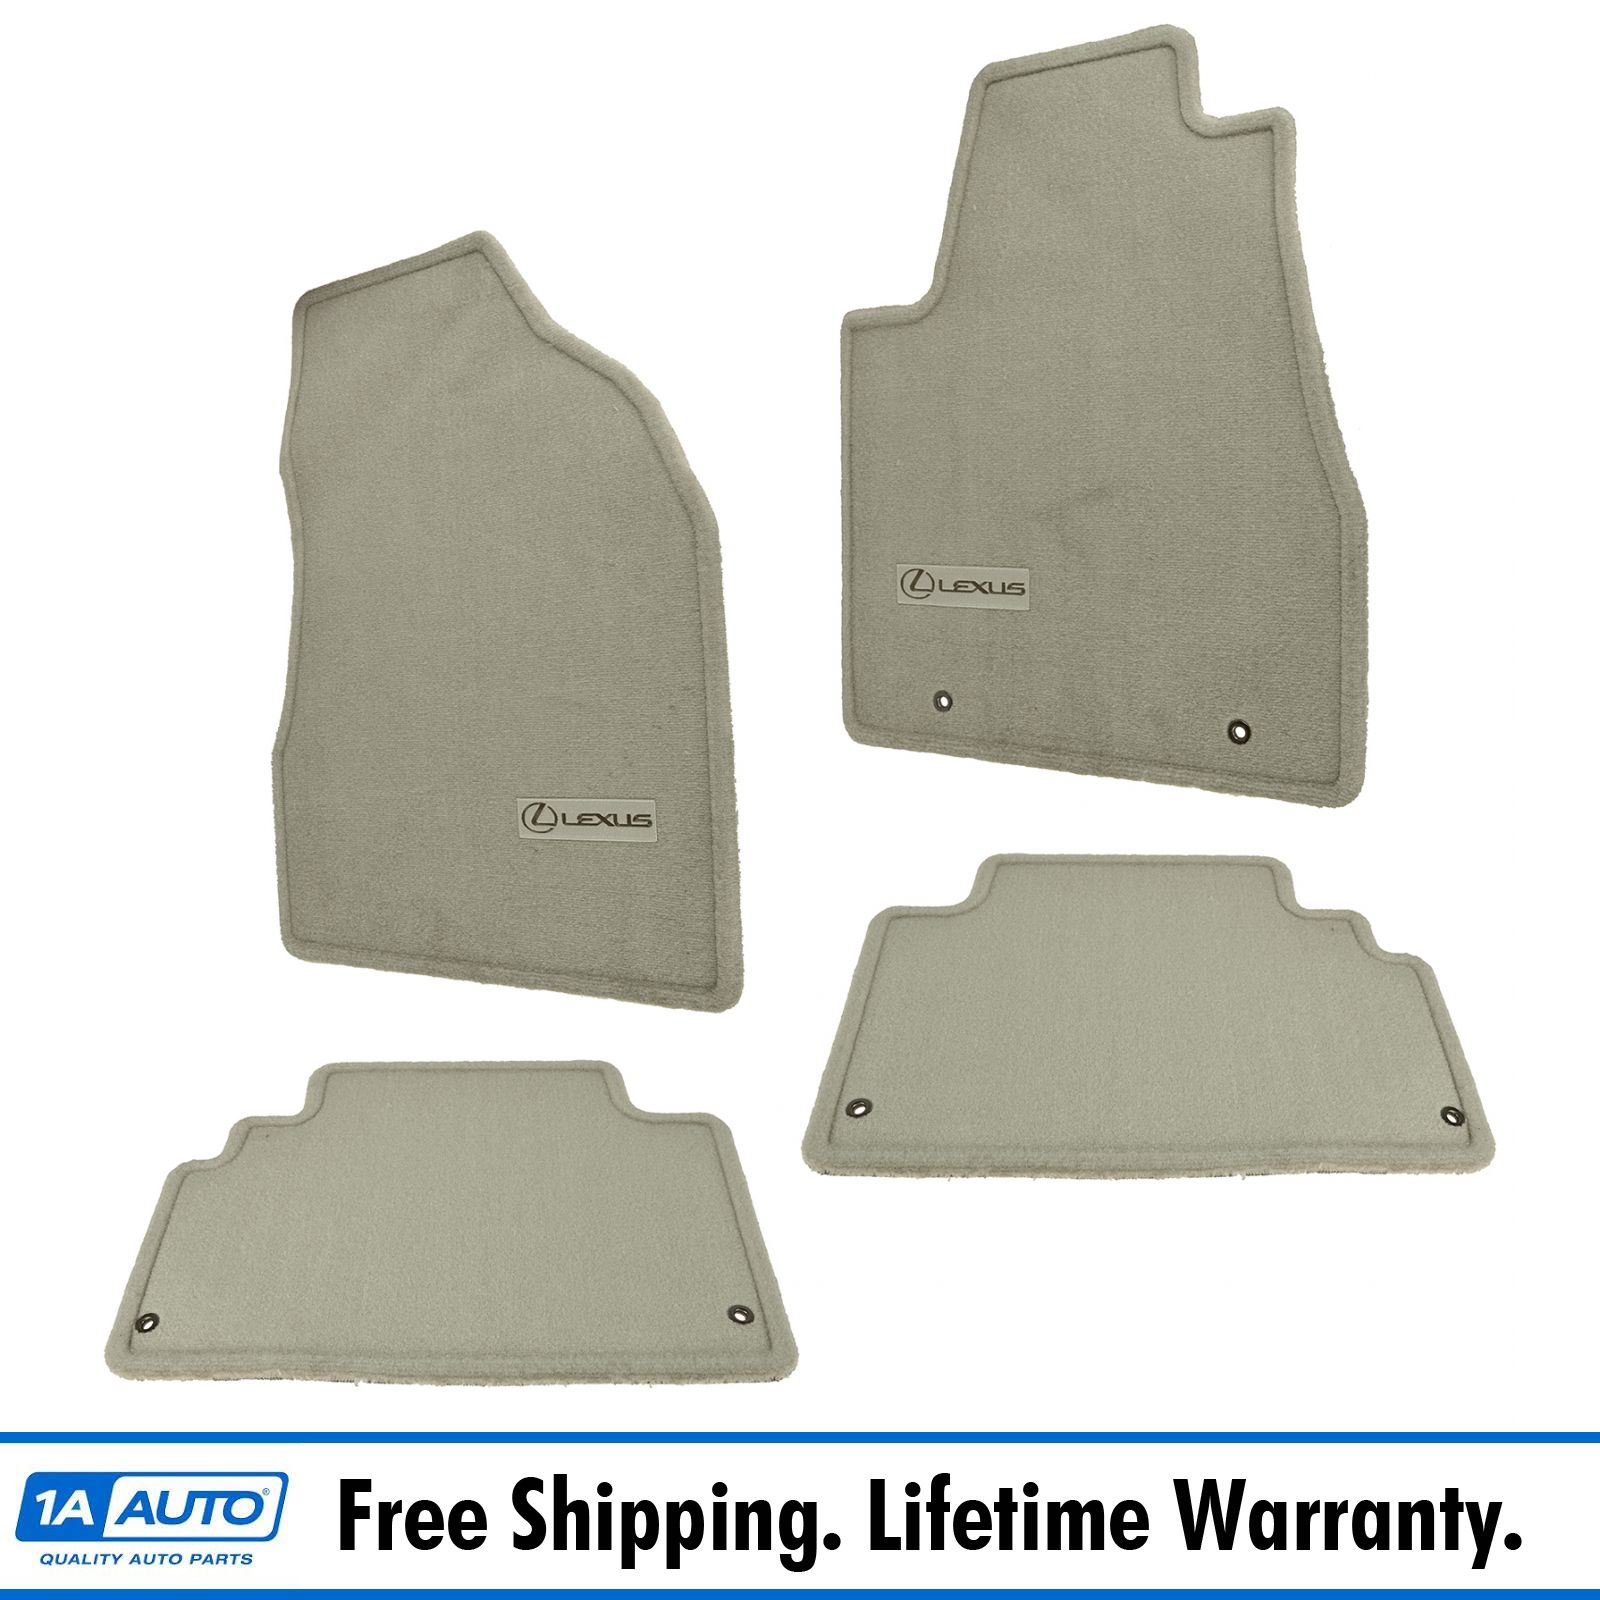 Lexus Rx350 Floor Mats: OEM Floor Mat Carpet Set Of 4 LH RH Front & Rear Ivory For